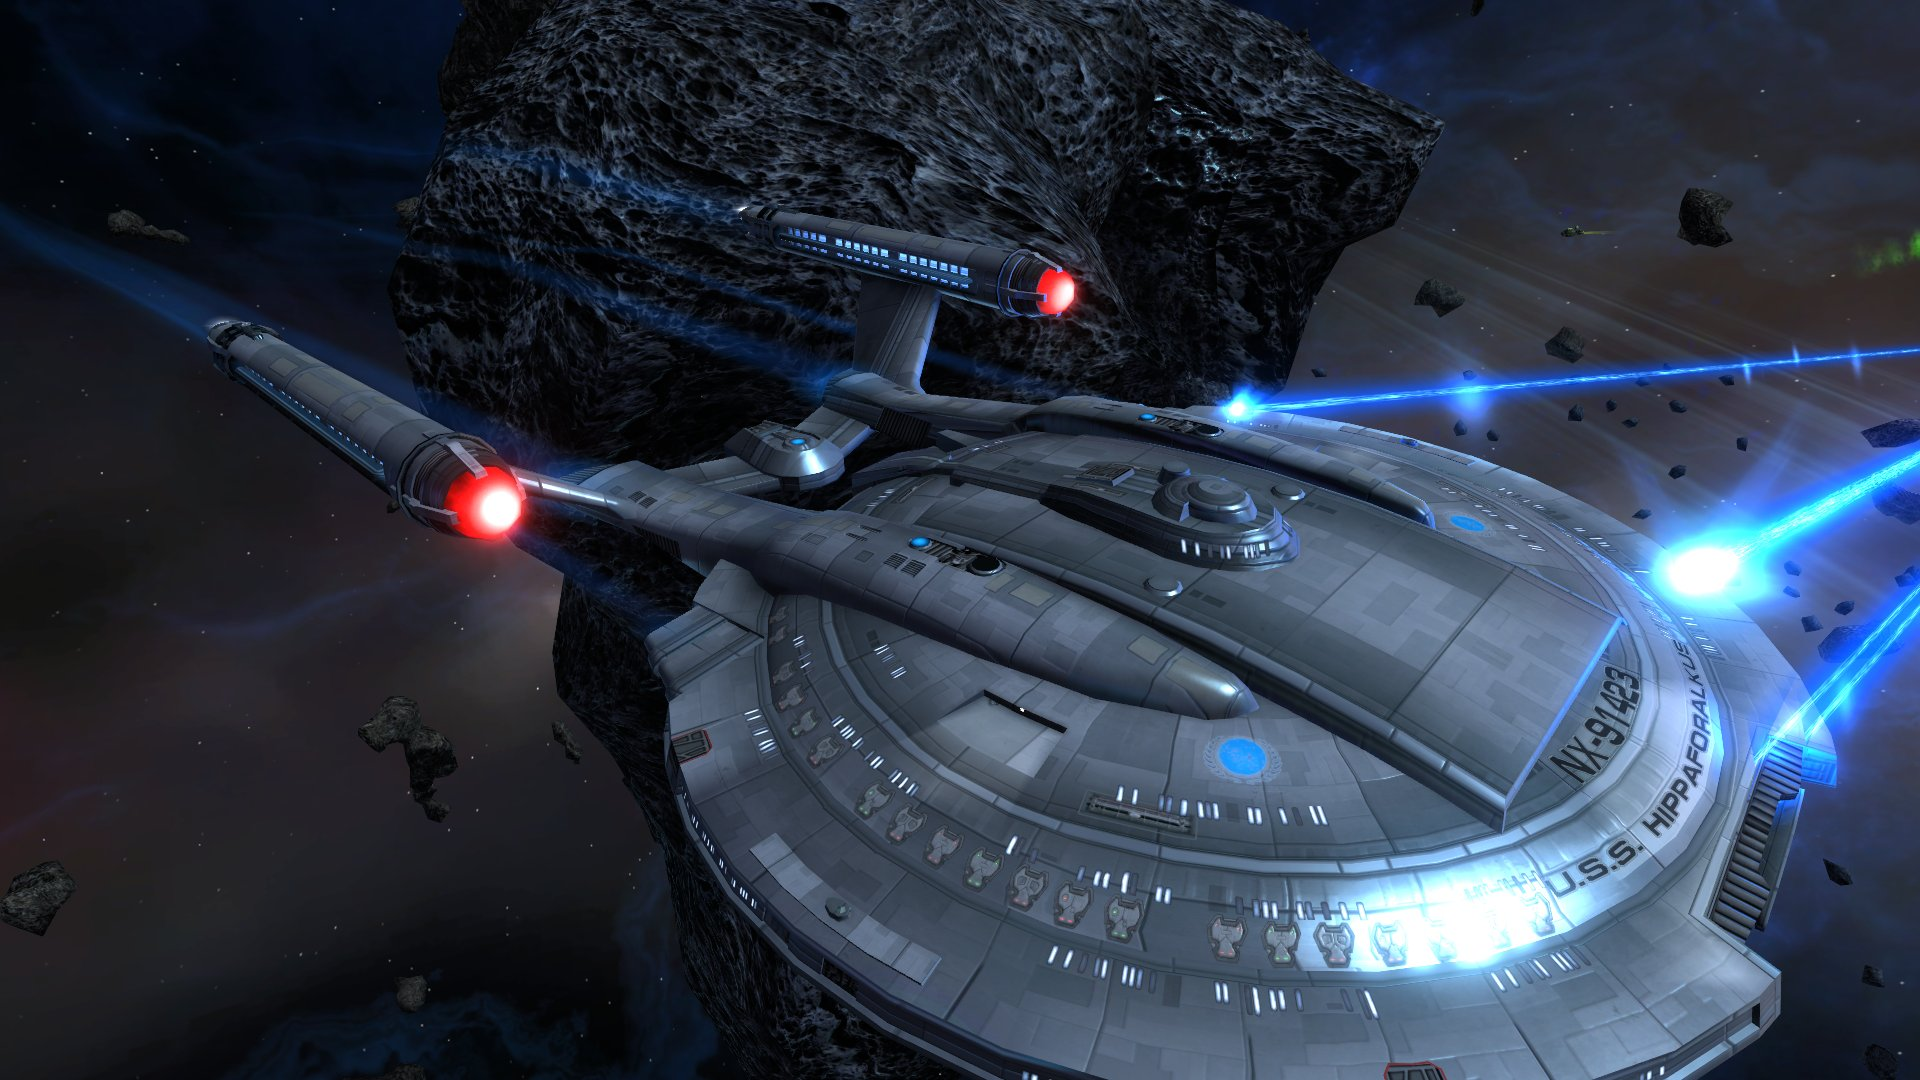 STAR TREK ONLINE game sci fi spaceship wallpaper 1920x1080